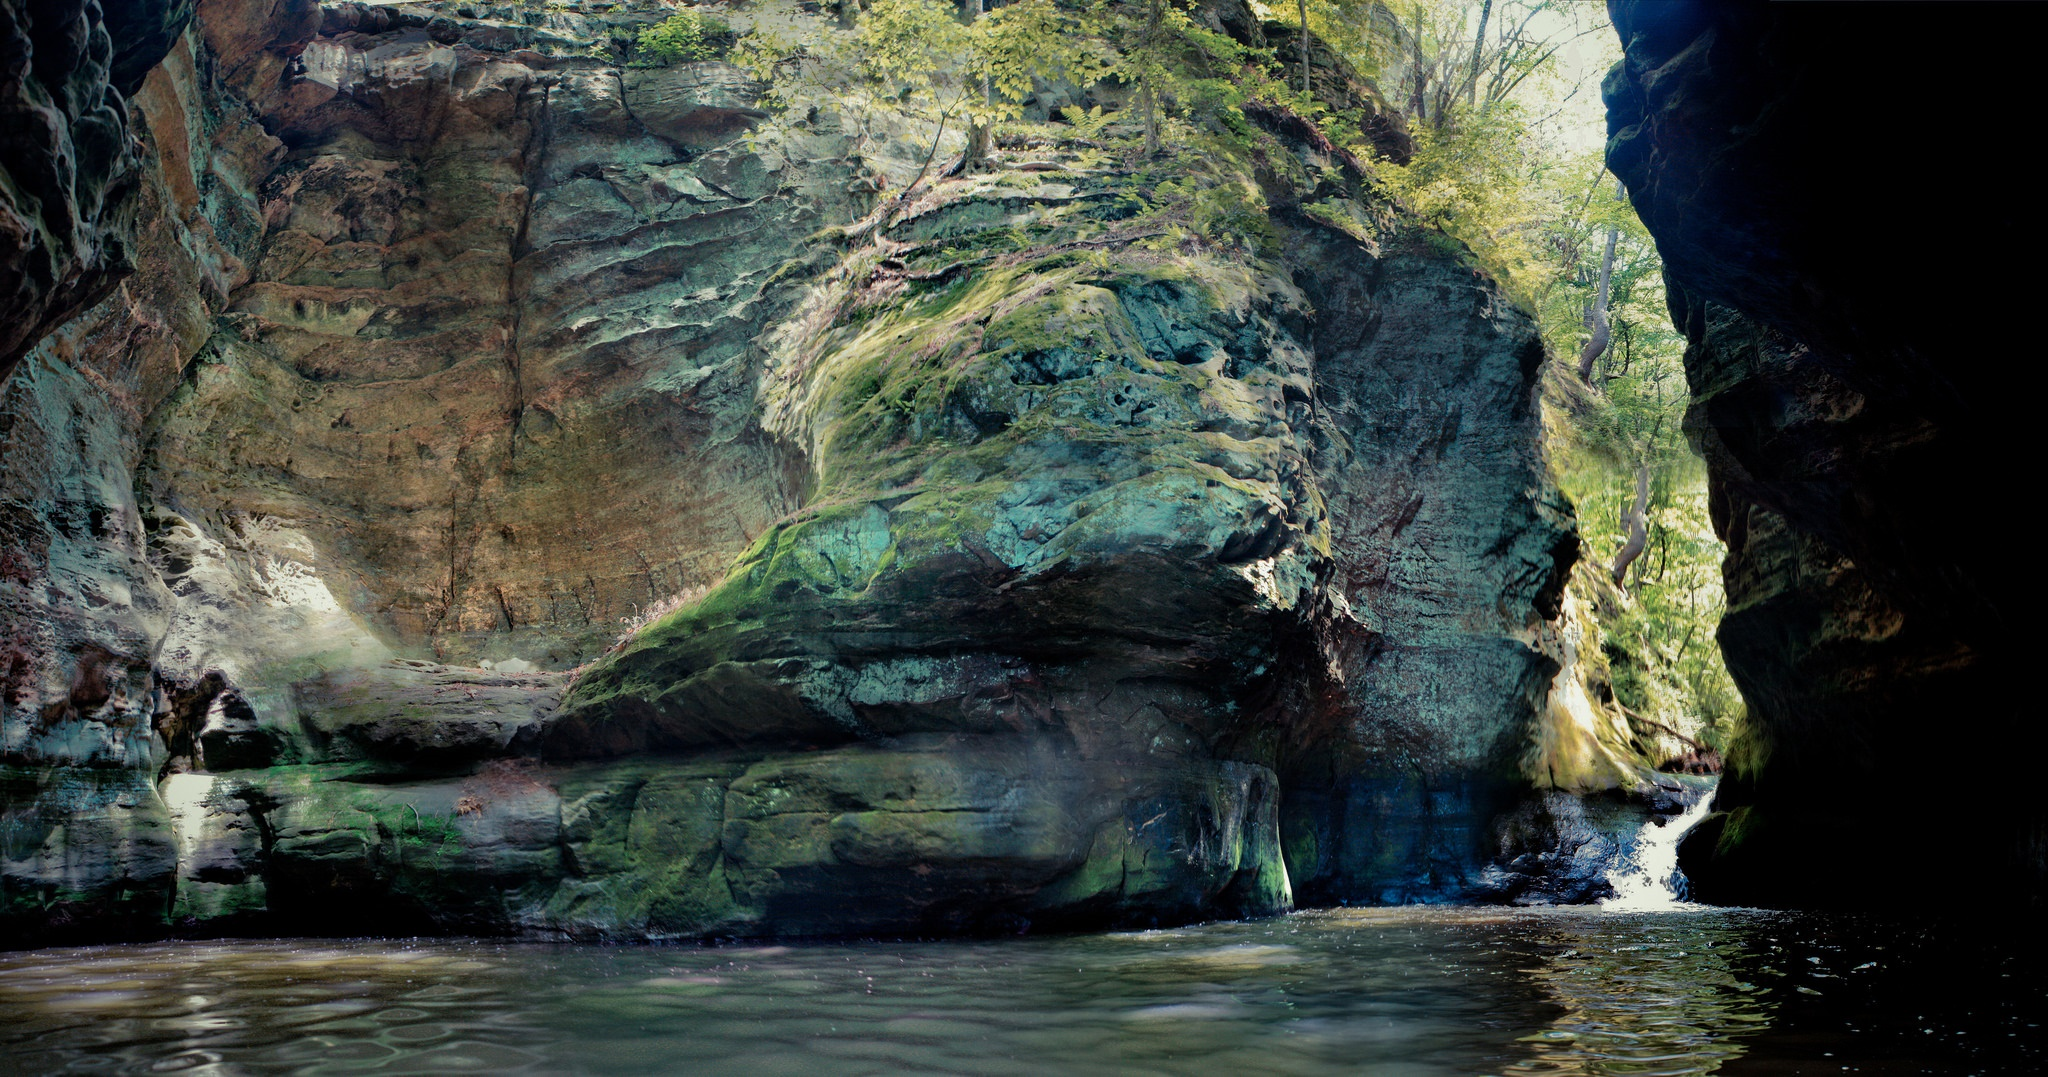 4 Of The Best Natural Swimming Holes in Wisconsin